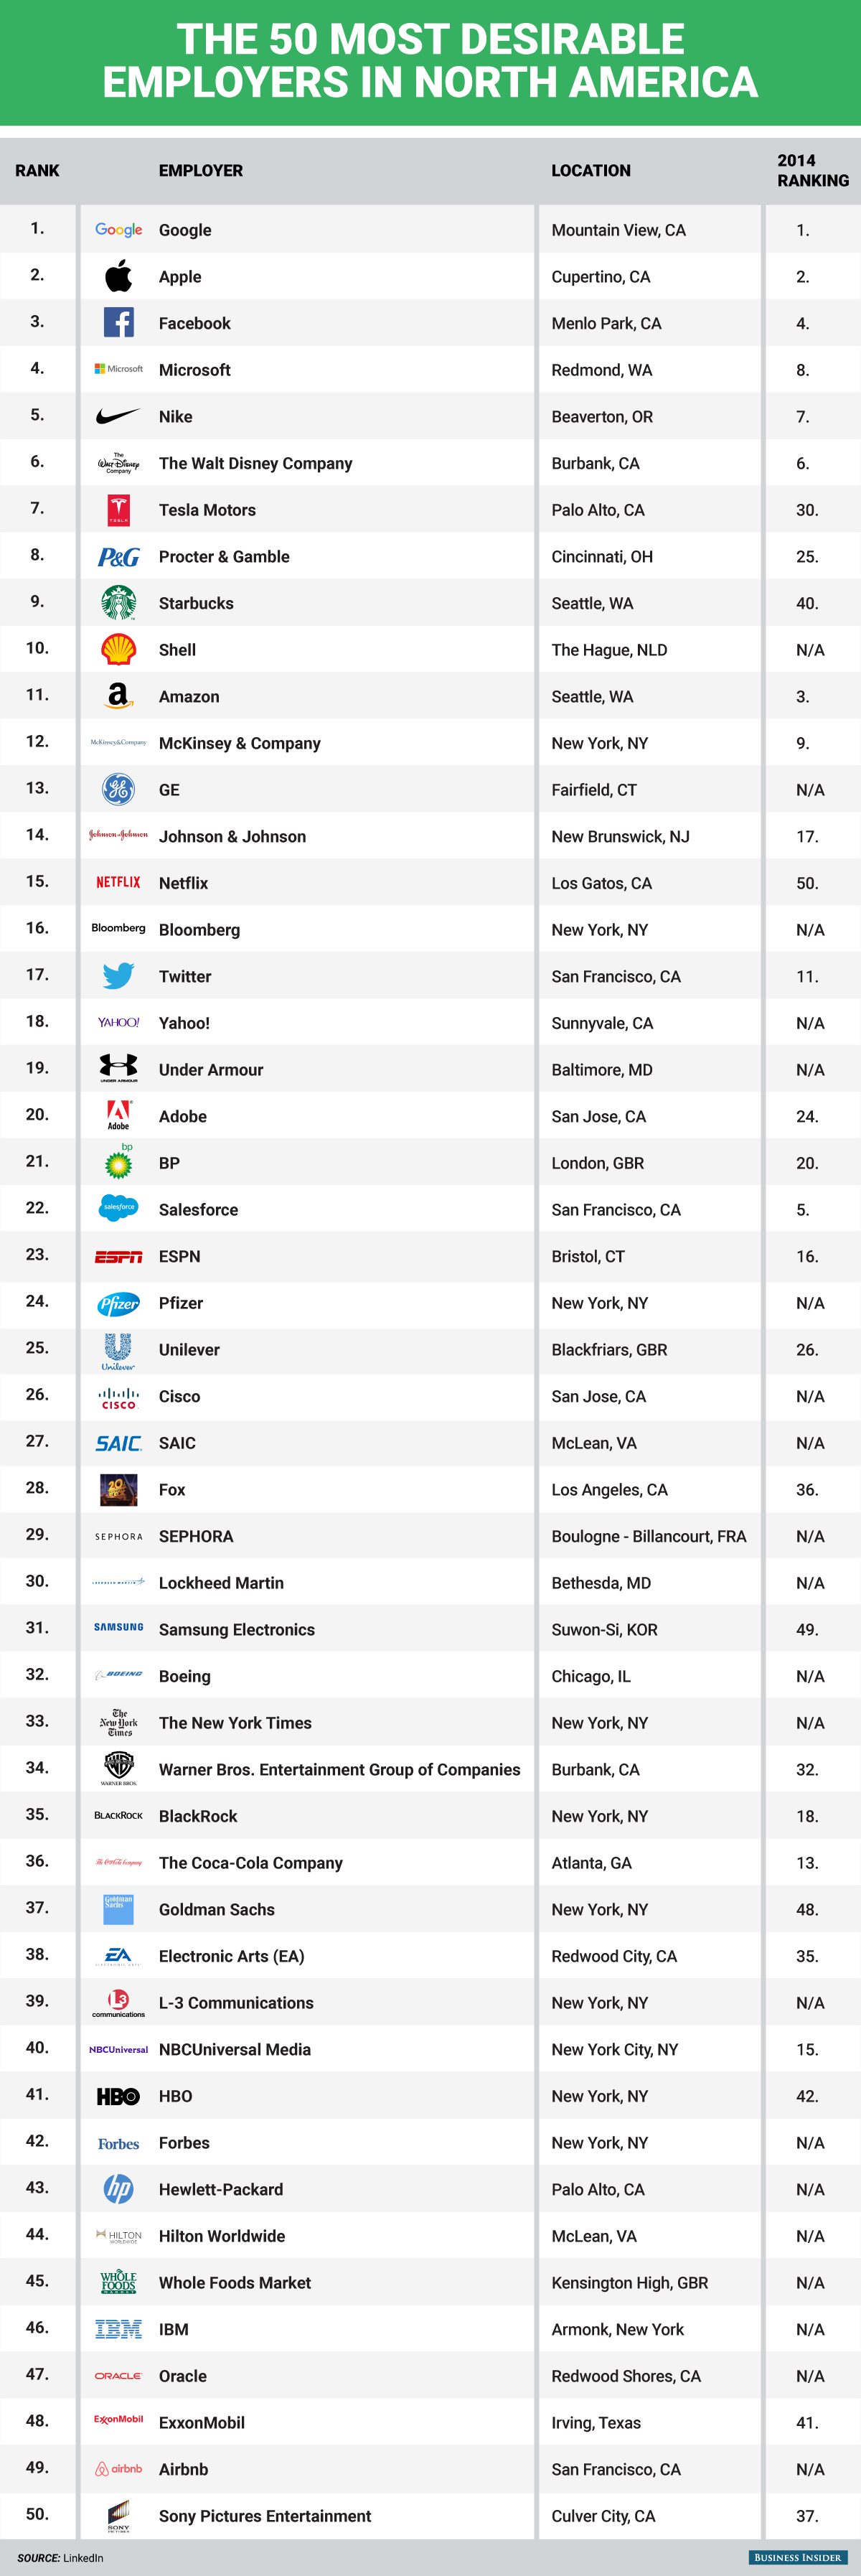 1445241961_bi-graphicsthe-worlds-50-most-desirable-employers-in-north-america.png